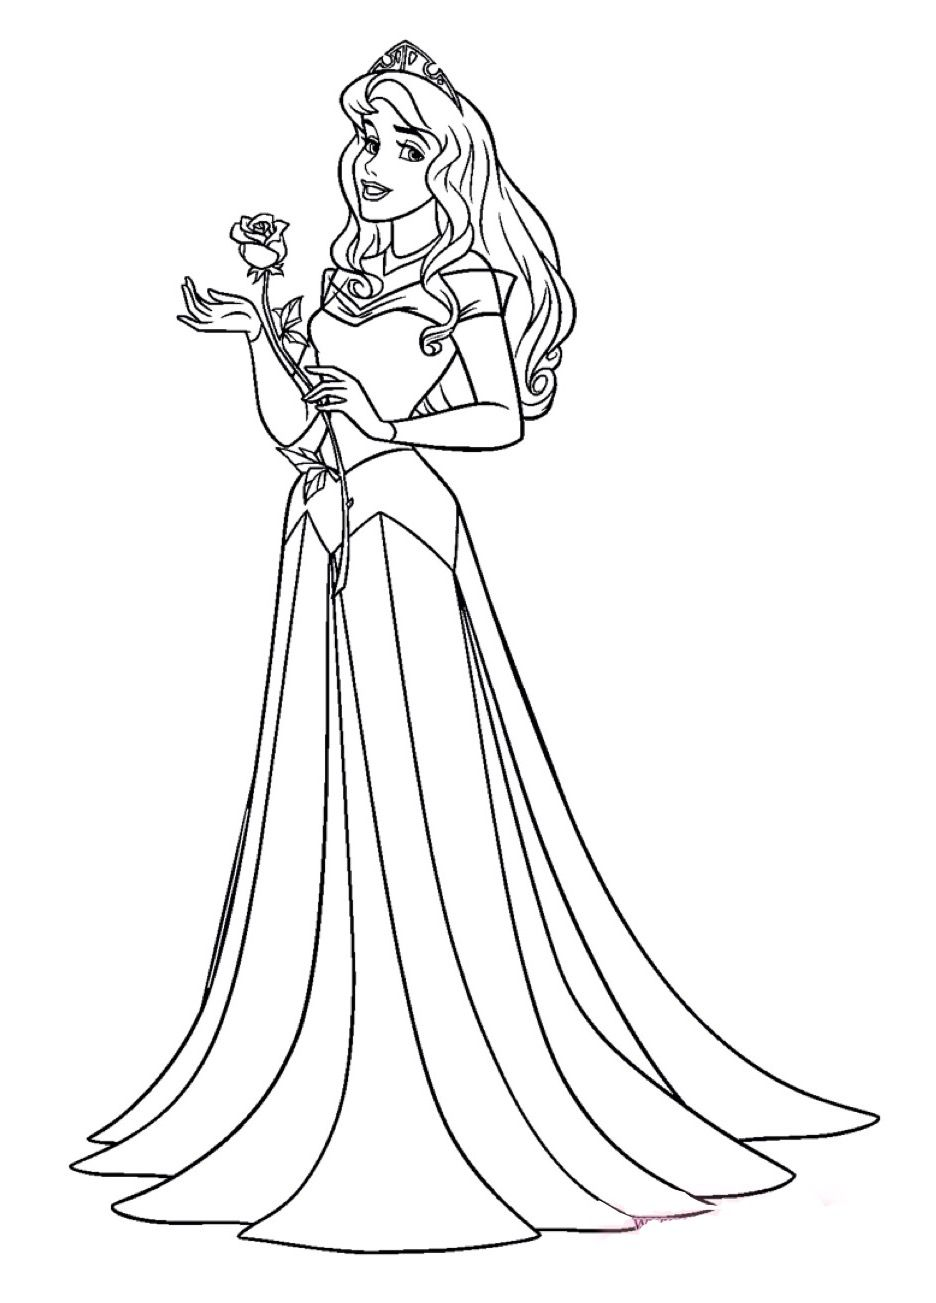 Pin By Bete On 2 Coloriage Disney Princess Coloring Pages Sleeping Beauty Coloring Pages Disney Princess Colors